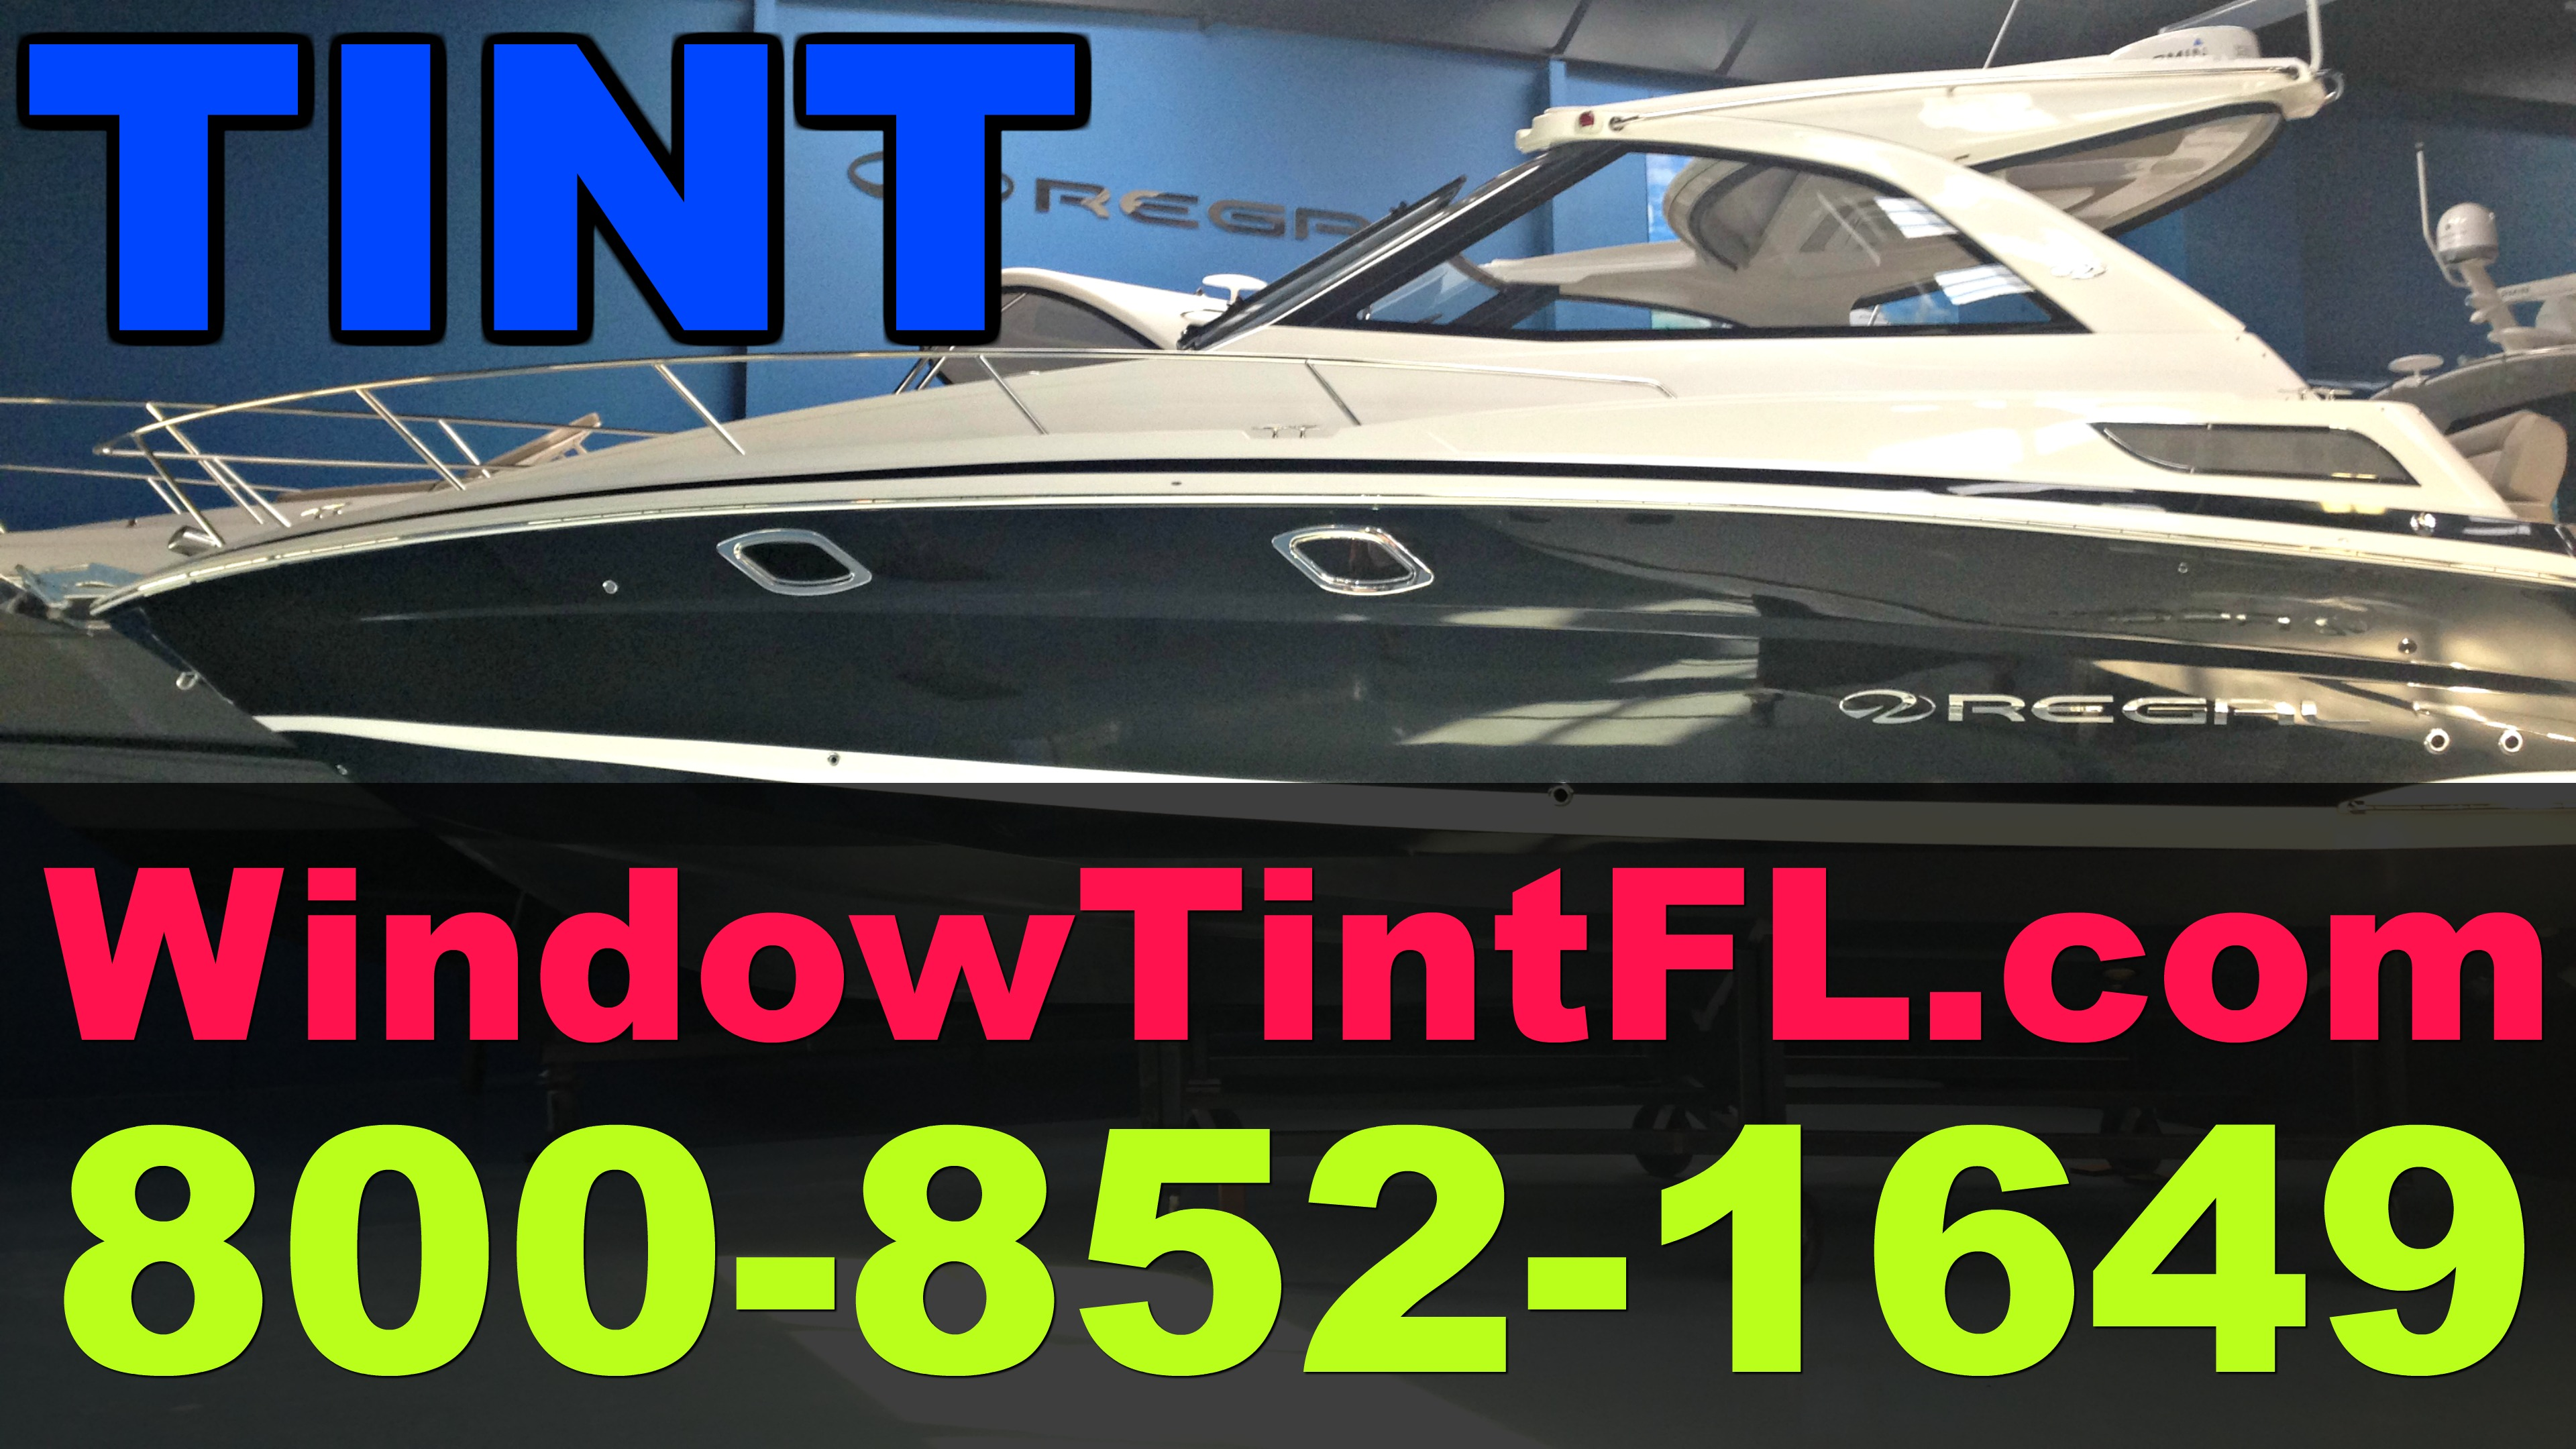 Best Boat Window Tint in Clearwater Florida